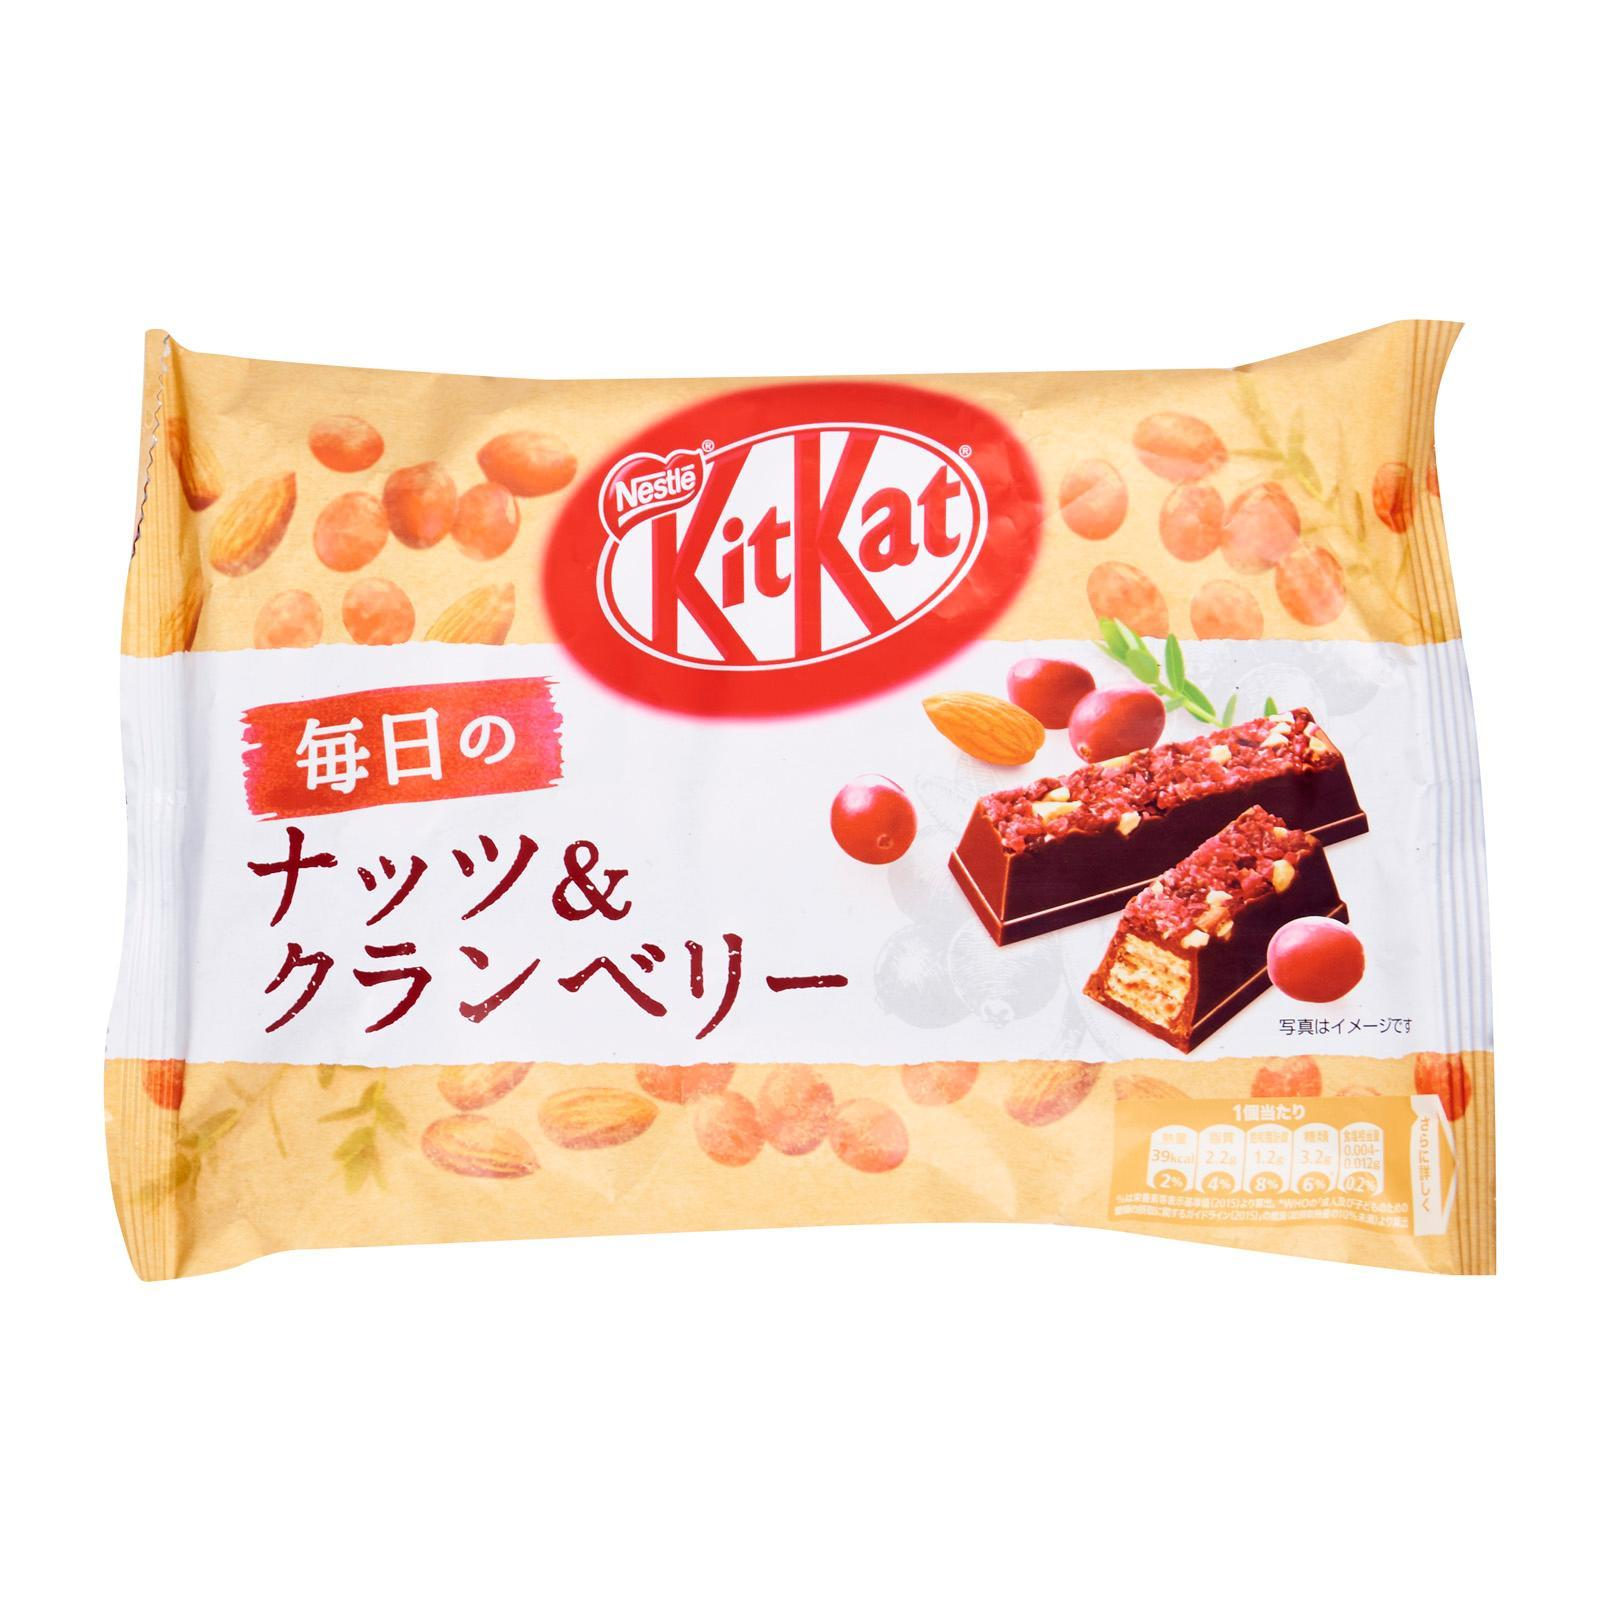 Nestle Kit Kat Nuts And Cranberry Chocolate